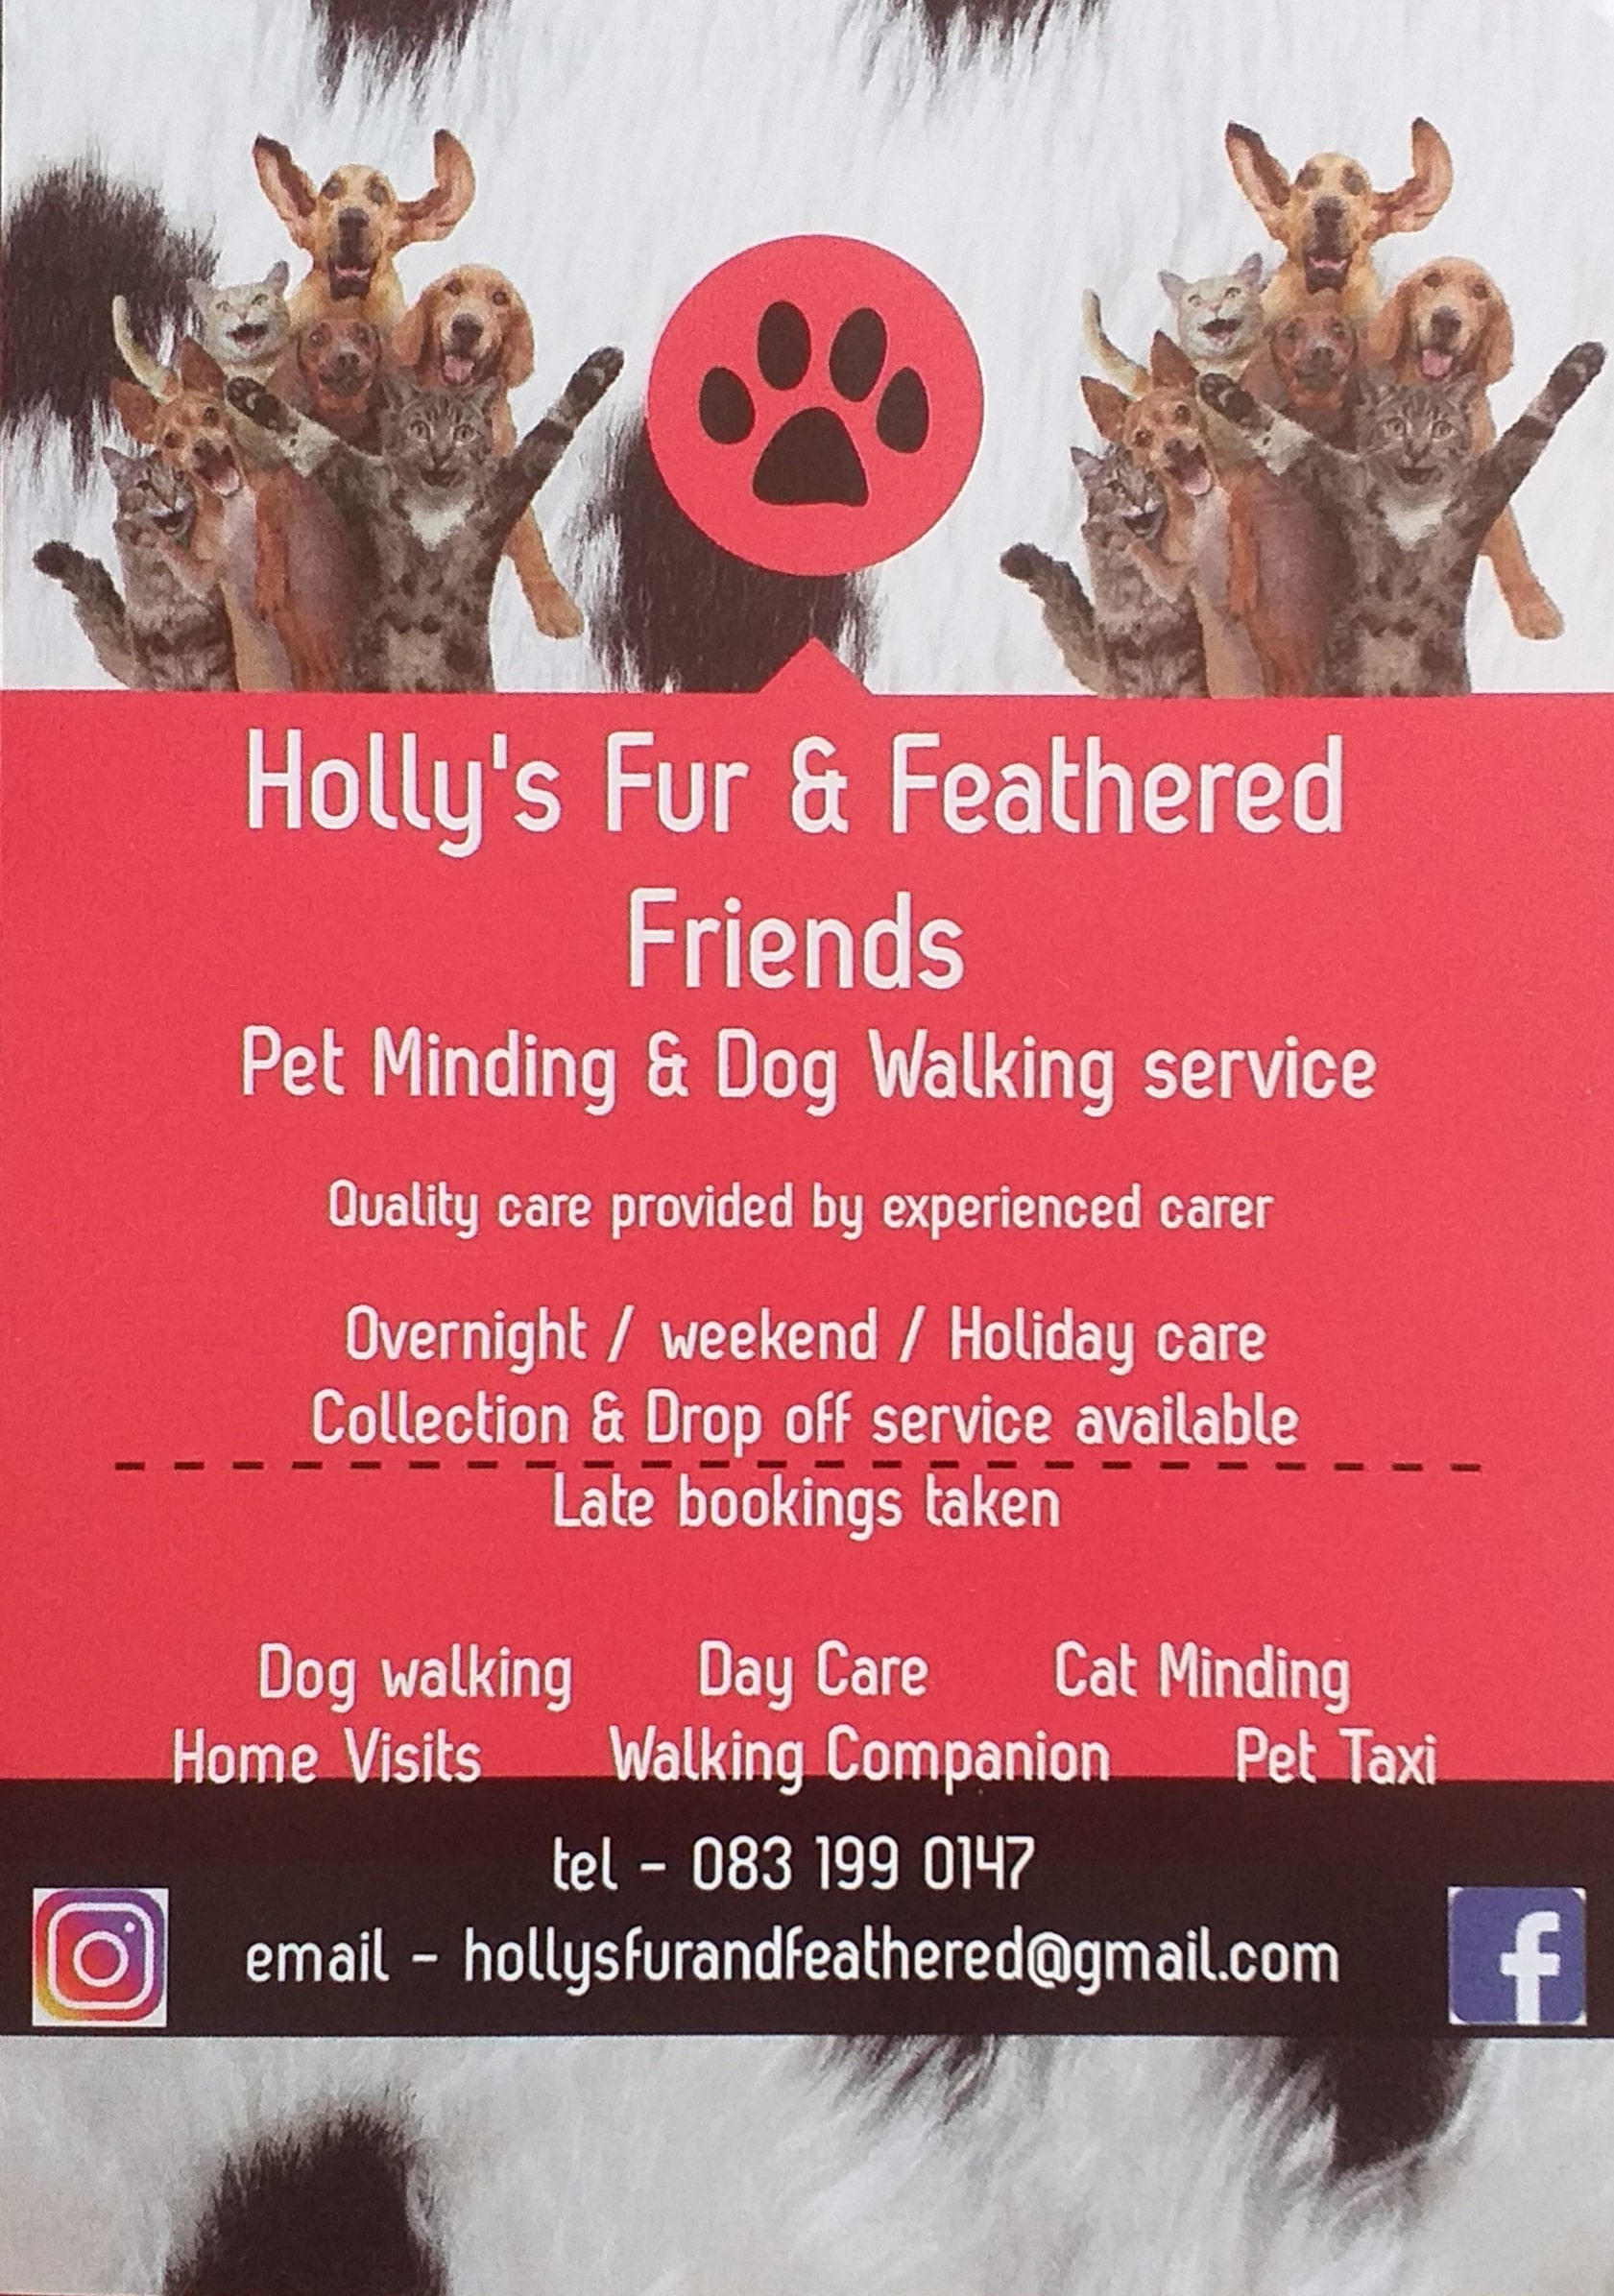 Pet Minding & Dog Walking Service Image